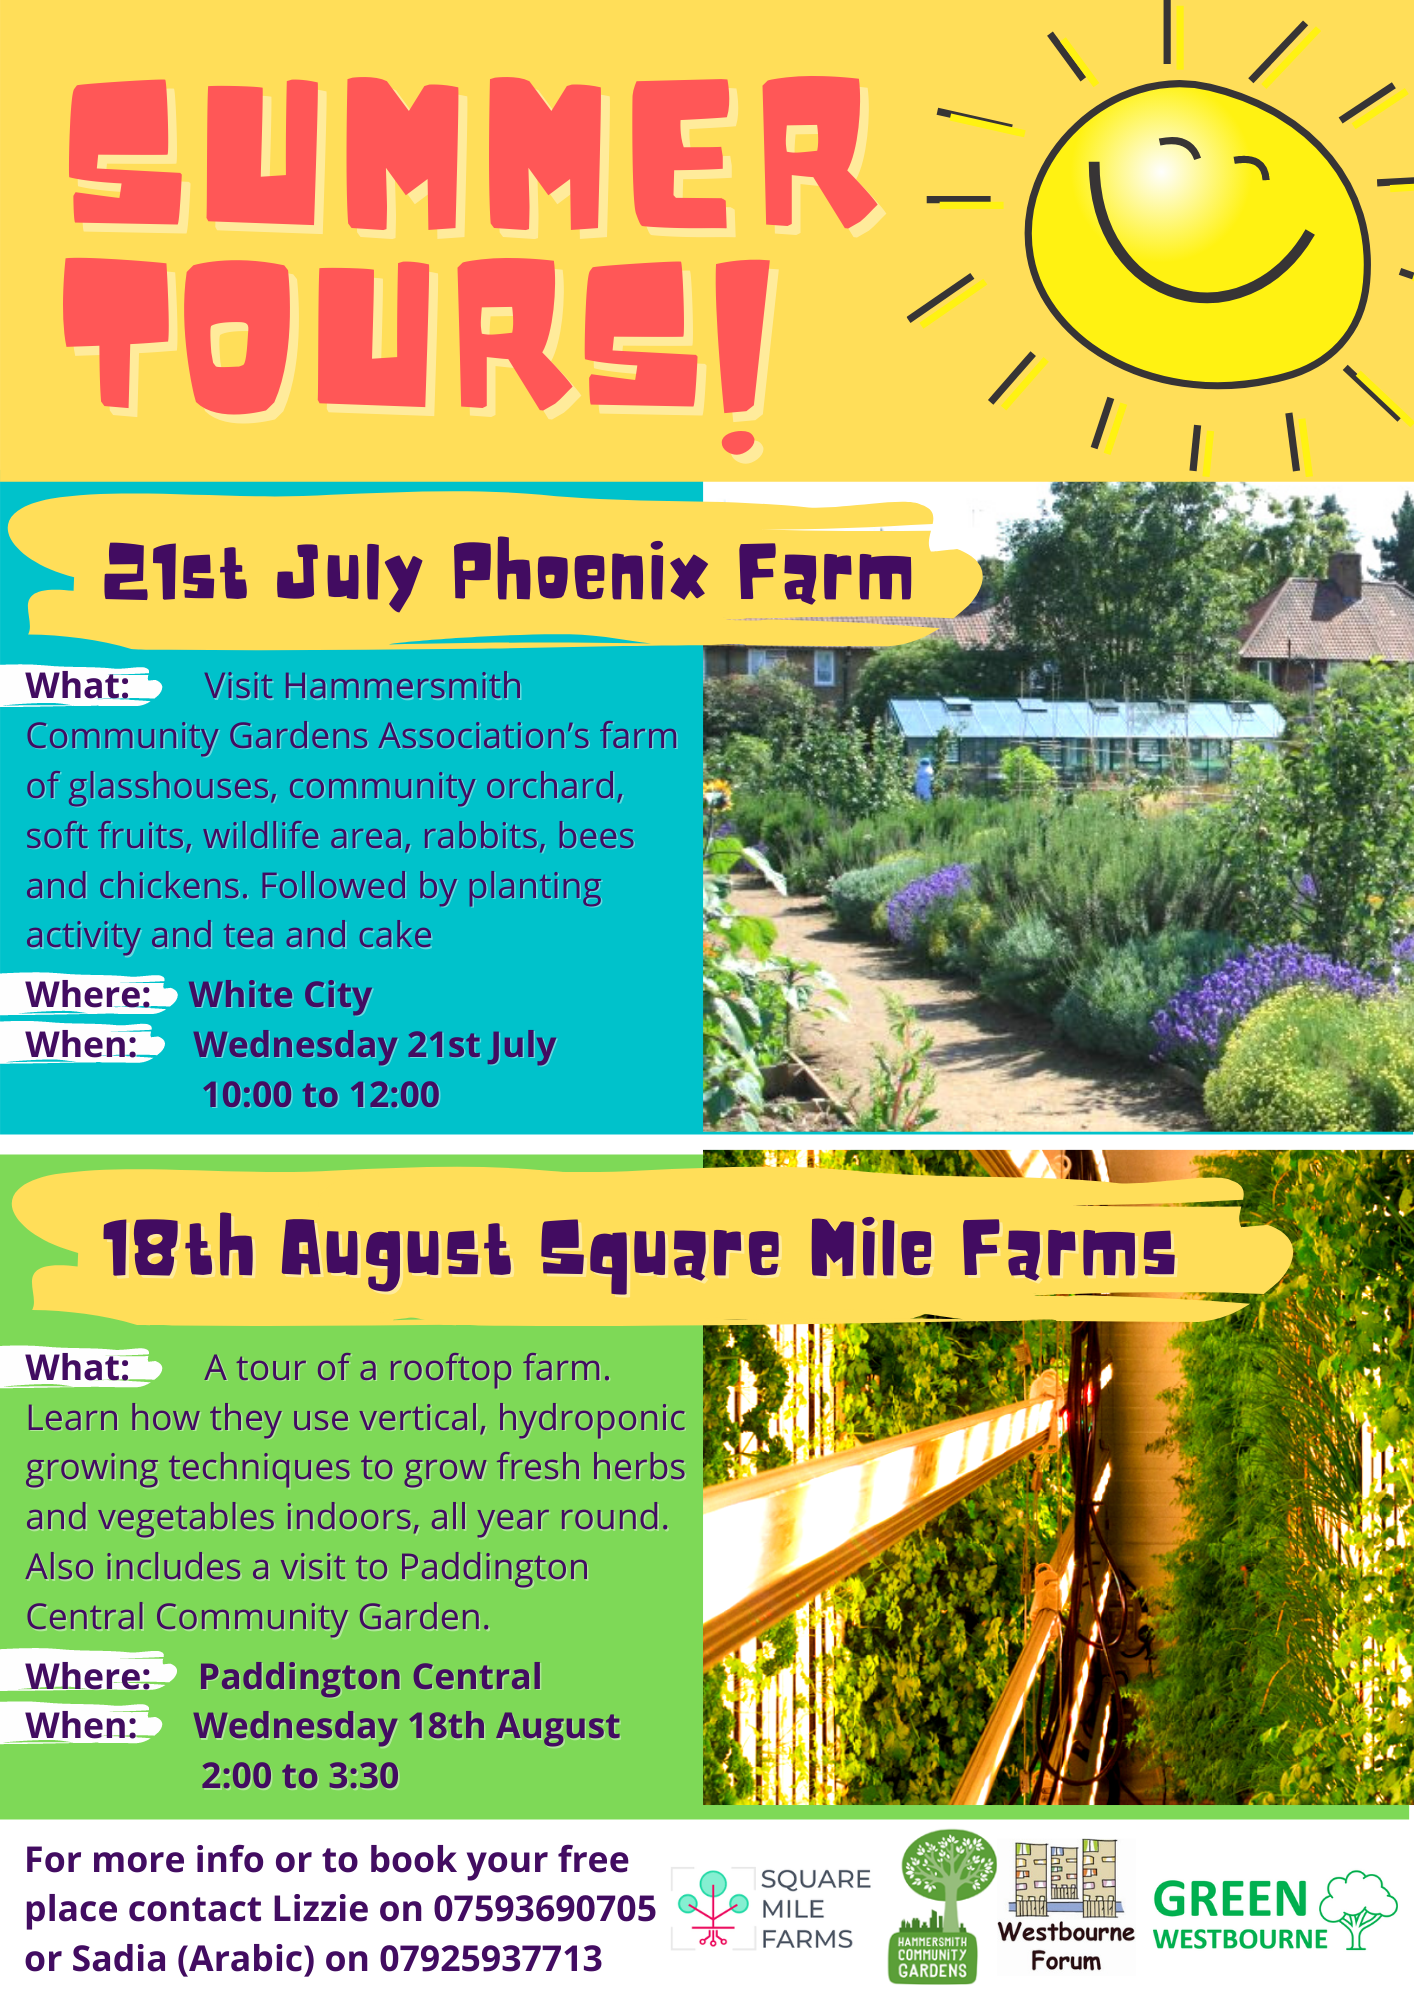 Summer Farm Tours!  21st July Phoenix Farm  What: Visit Hammersmith Community Garden Association's farm of glasshouses, community orchard, soft fruits, wildlife area, rabbits, bees and chickens. Followed by planting activity and tea and cake  Where: White City  When: Wednesday 21st July 10:00 to 12:00   18th August Square Mile Farms  What: A tour of a rooftop farm. Learn how they use vertical, hydroponic growing techniques to grow fresh herbs and vegetables indoors, all year round. Also includes a visit to Paddington Central Community Garden.  Where: Paddington Central  When: Wednesday 18th August 2:00 tp 3:30  For more info to to book your free place contact Lizzie on 07593 690 705 or Sadia ( Arabic ) on 07925 937 713